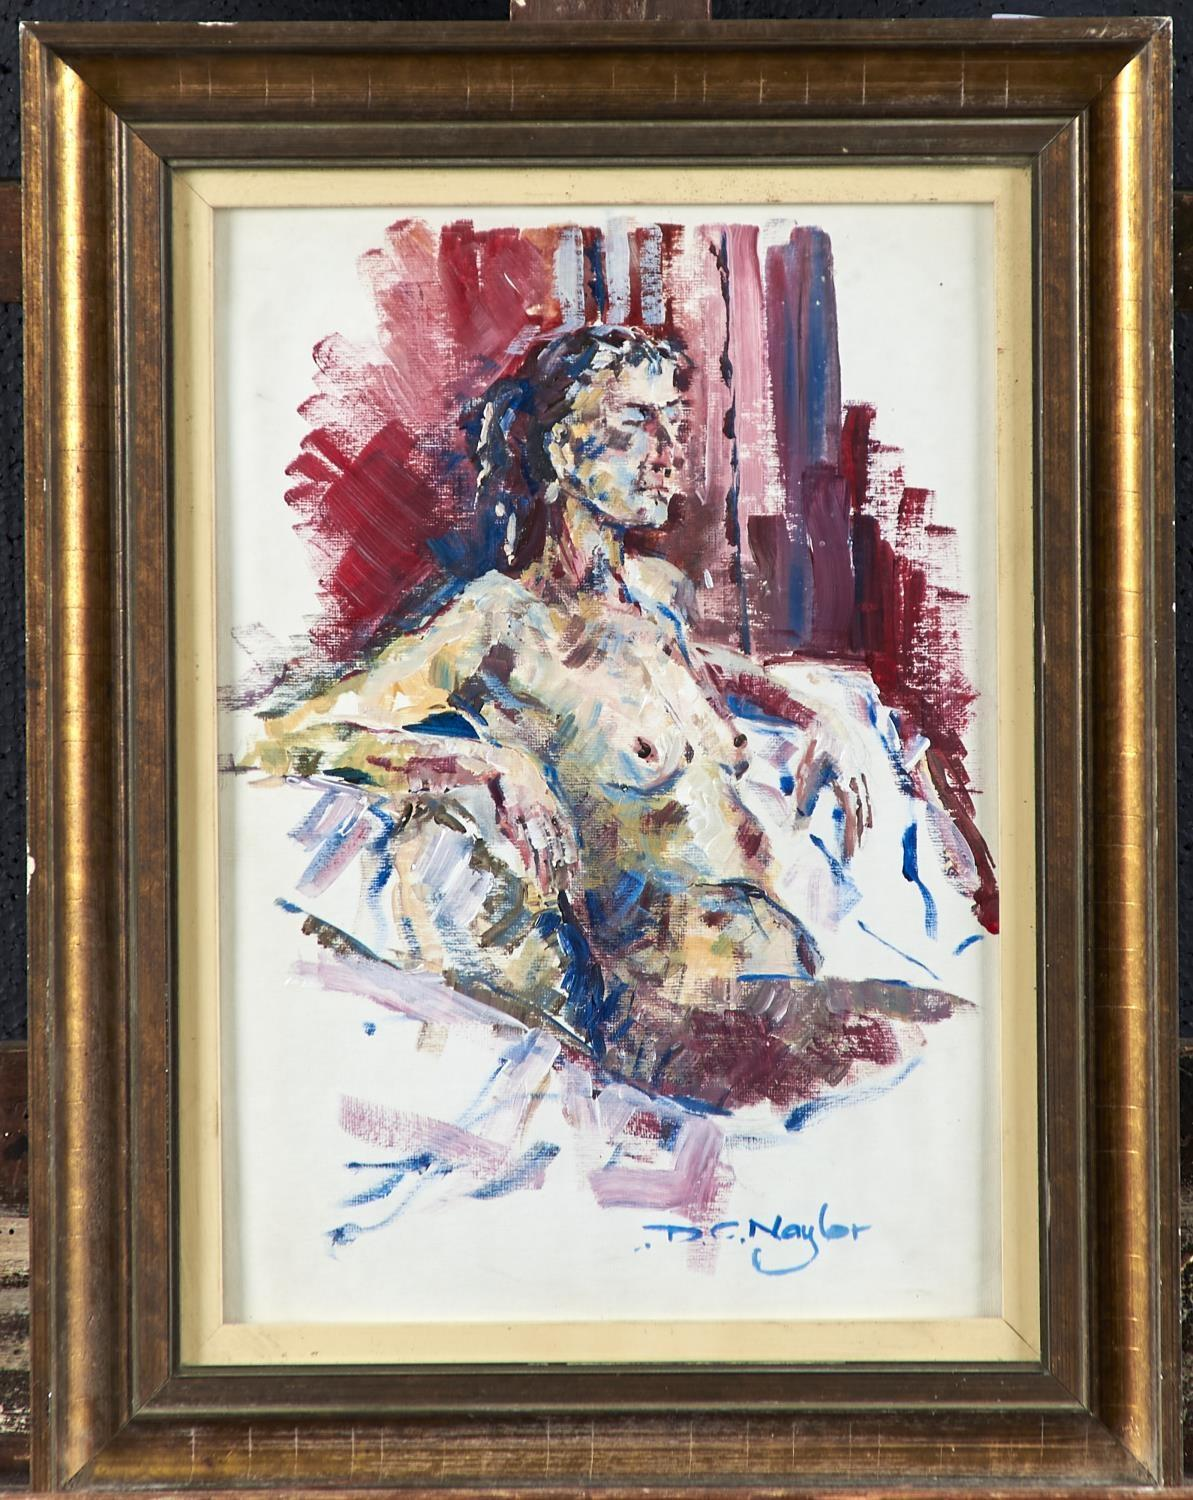 DAVID NAYLOR, 2OTH/21ST CENTURY - FEMALE NUDE, SIGNED, OIL ON BOARD, 34 X 24CM Good condition - Image 2 of 2